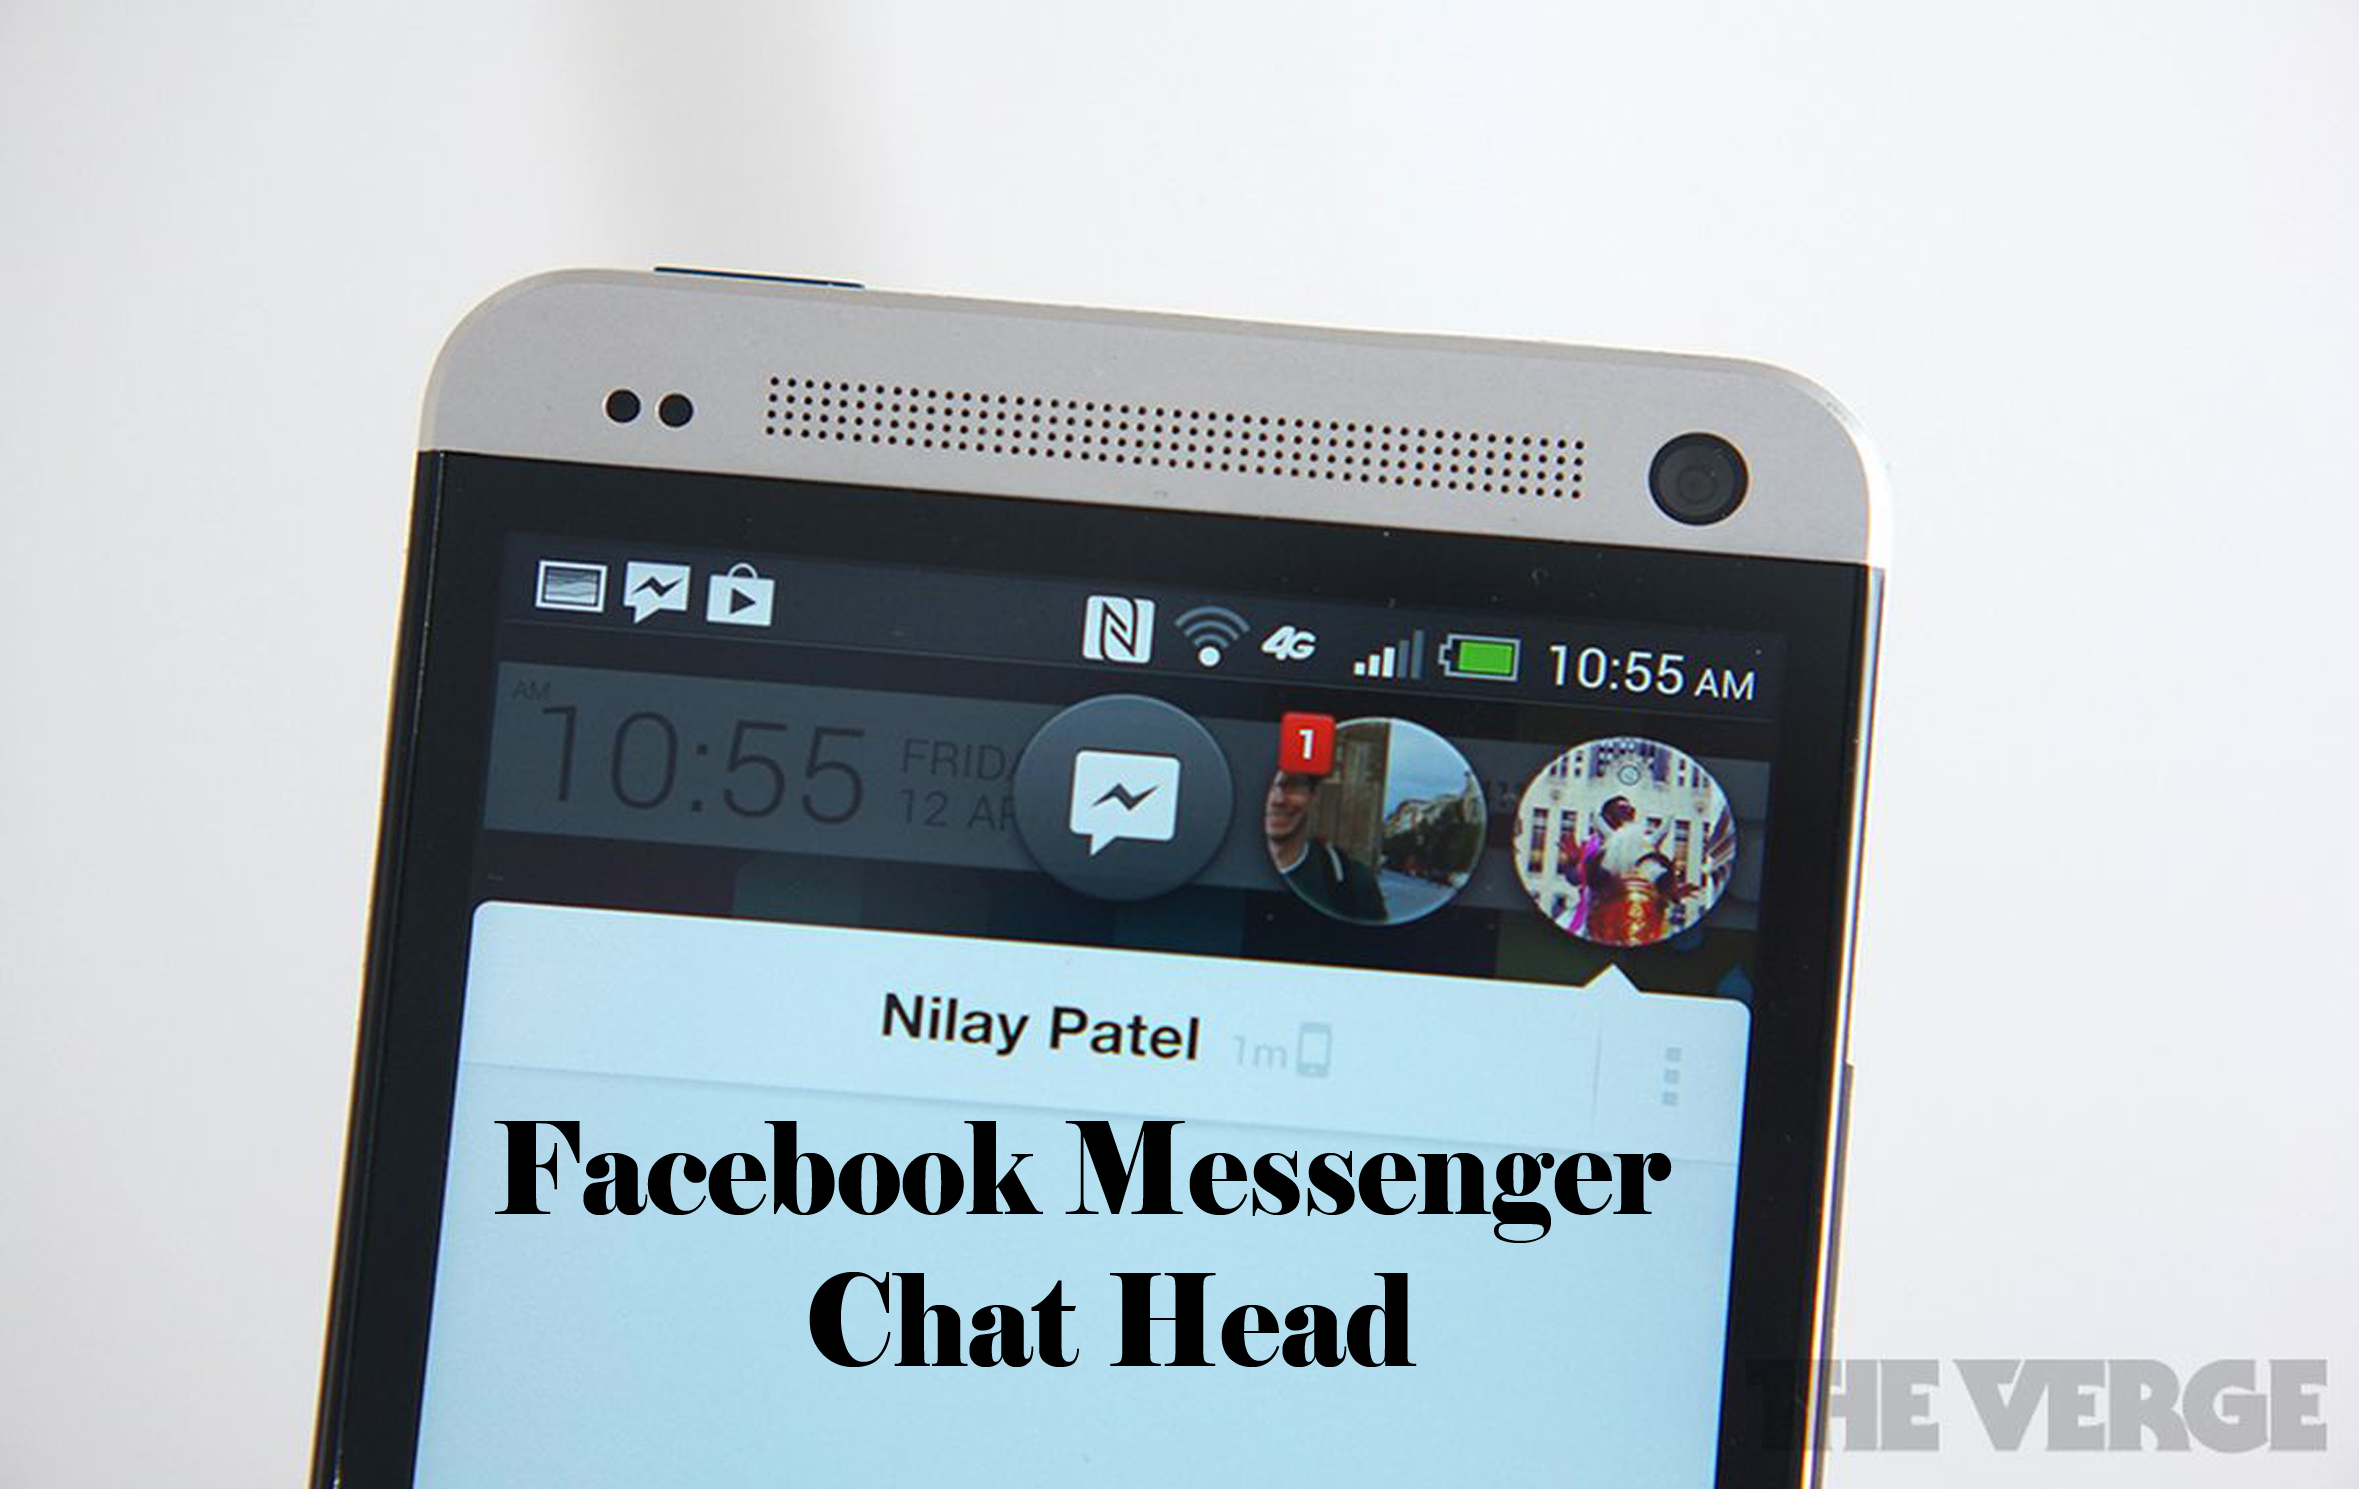 Facebook Messenger Chat Head